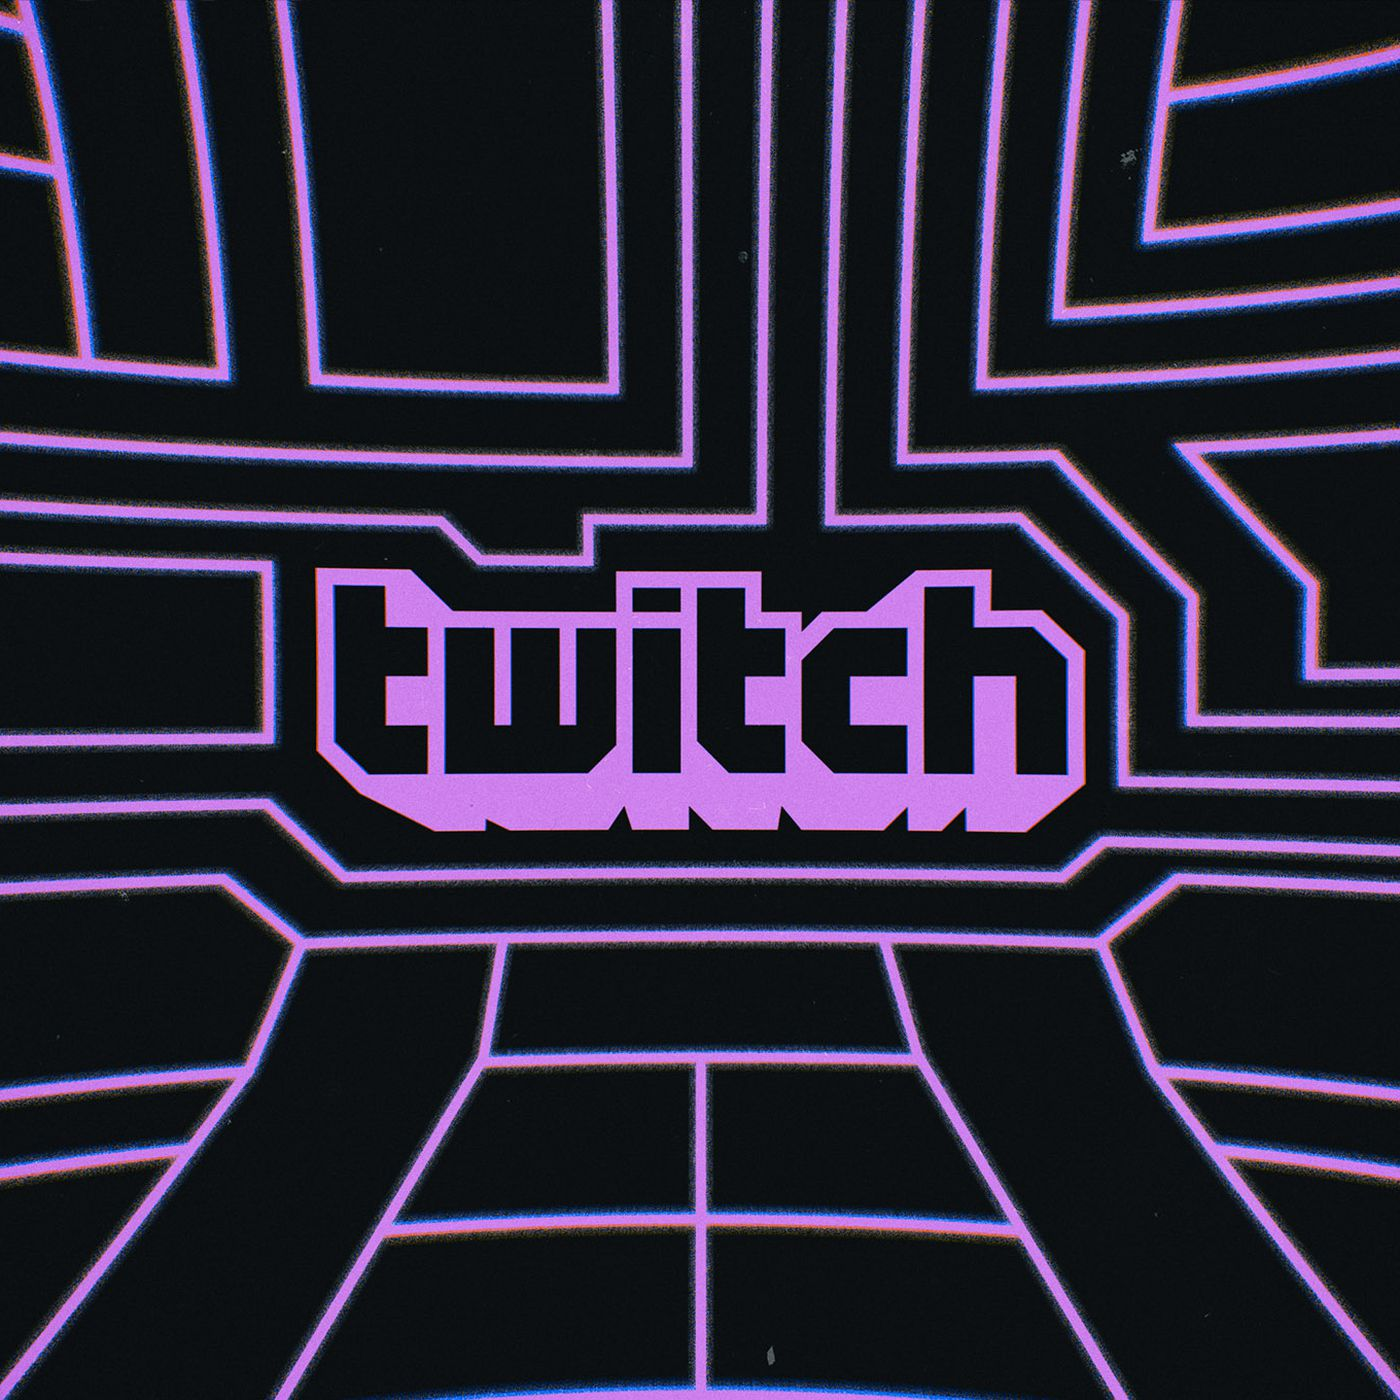 Twitch is closing in on its Christchurch trolls - The Verge